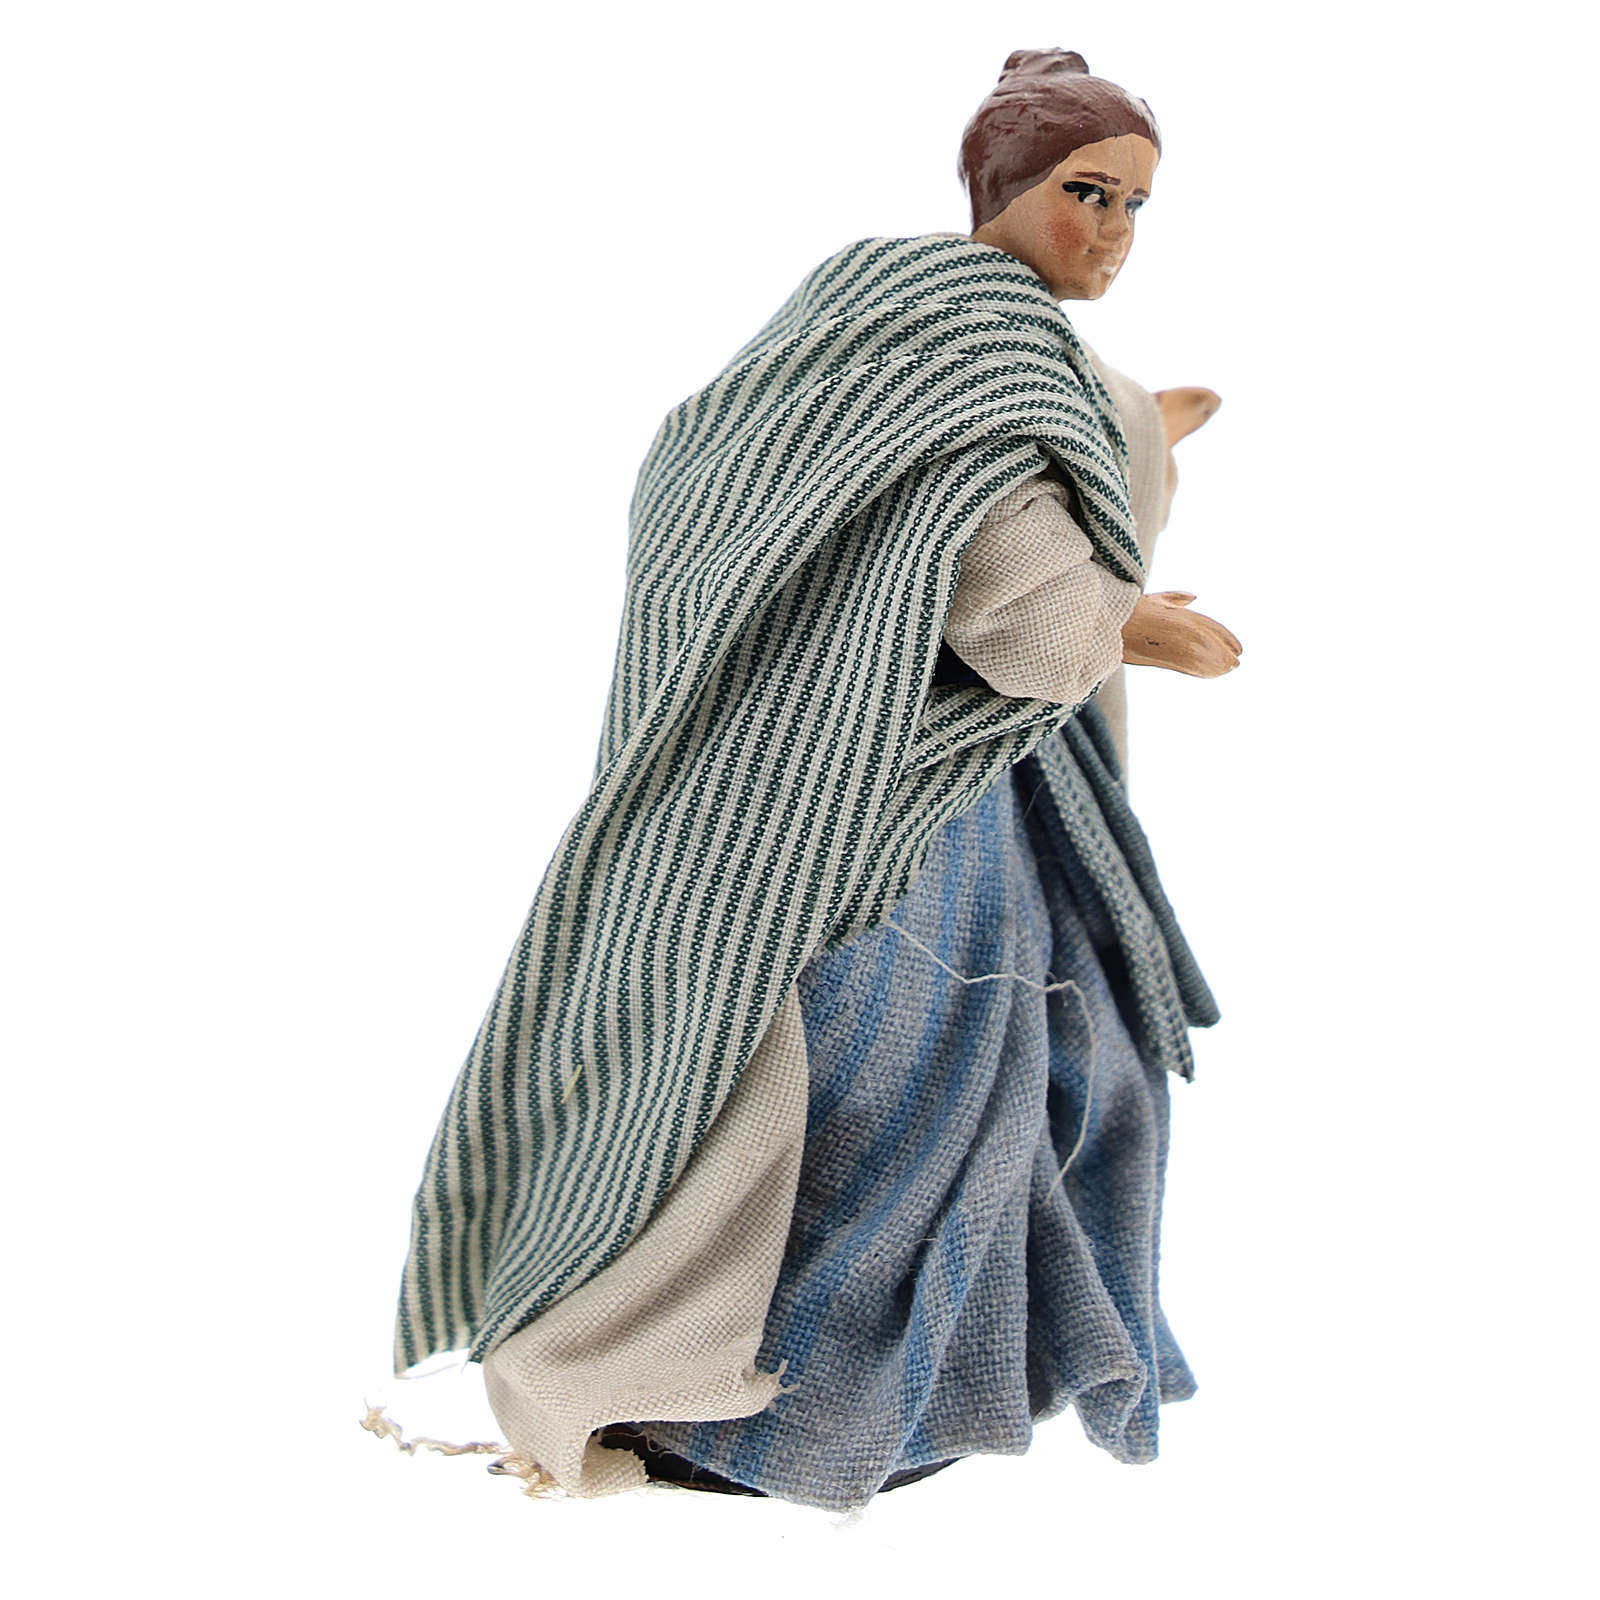 Neapolitan nativity figurine, Arabian buyer, 8cm 4